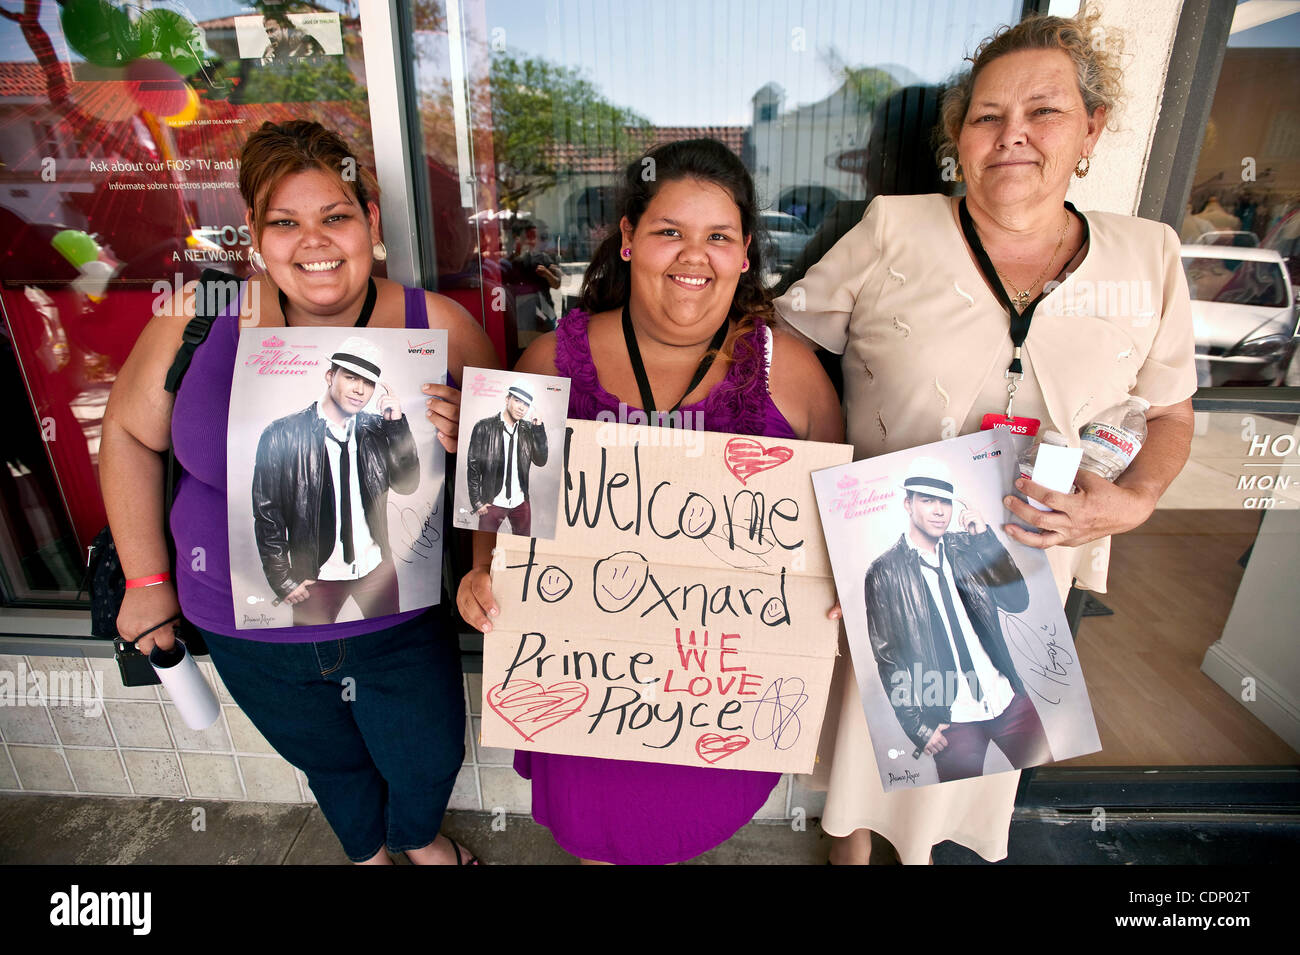 July 09 2011 oxnard california usa fans pose with freshly july 09 2011 oxnard california usa fans pose with freshly autographed posters after a meet and greet with latin recording sensation prince royce at a m4hsunfo Gallery